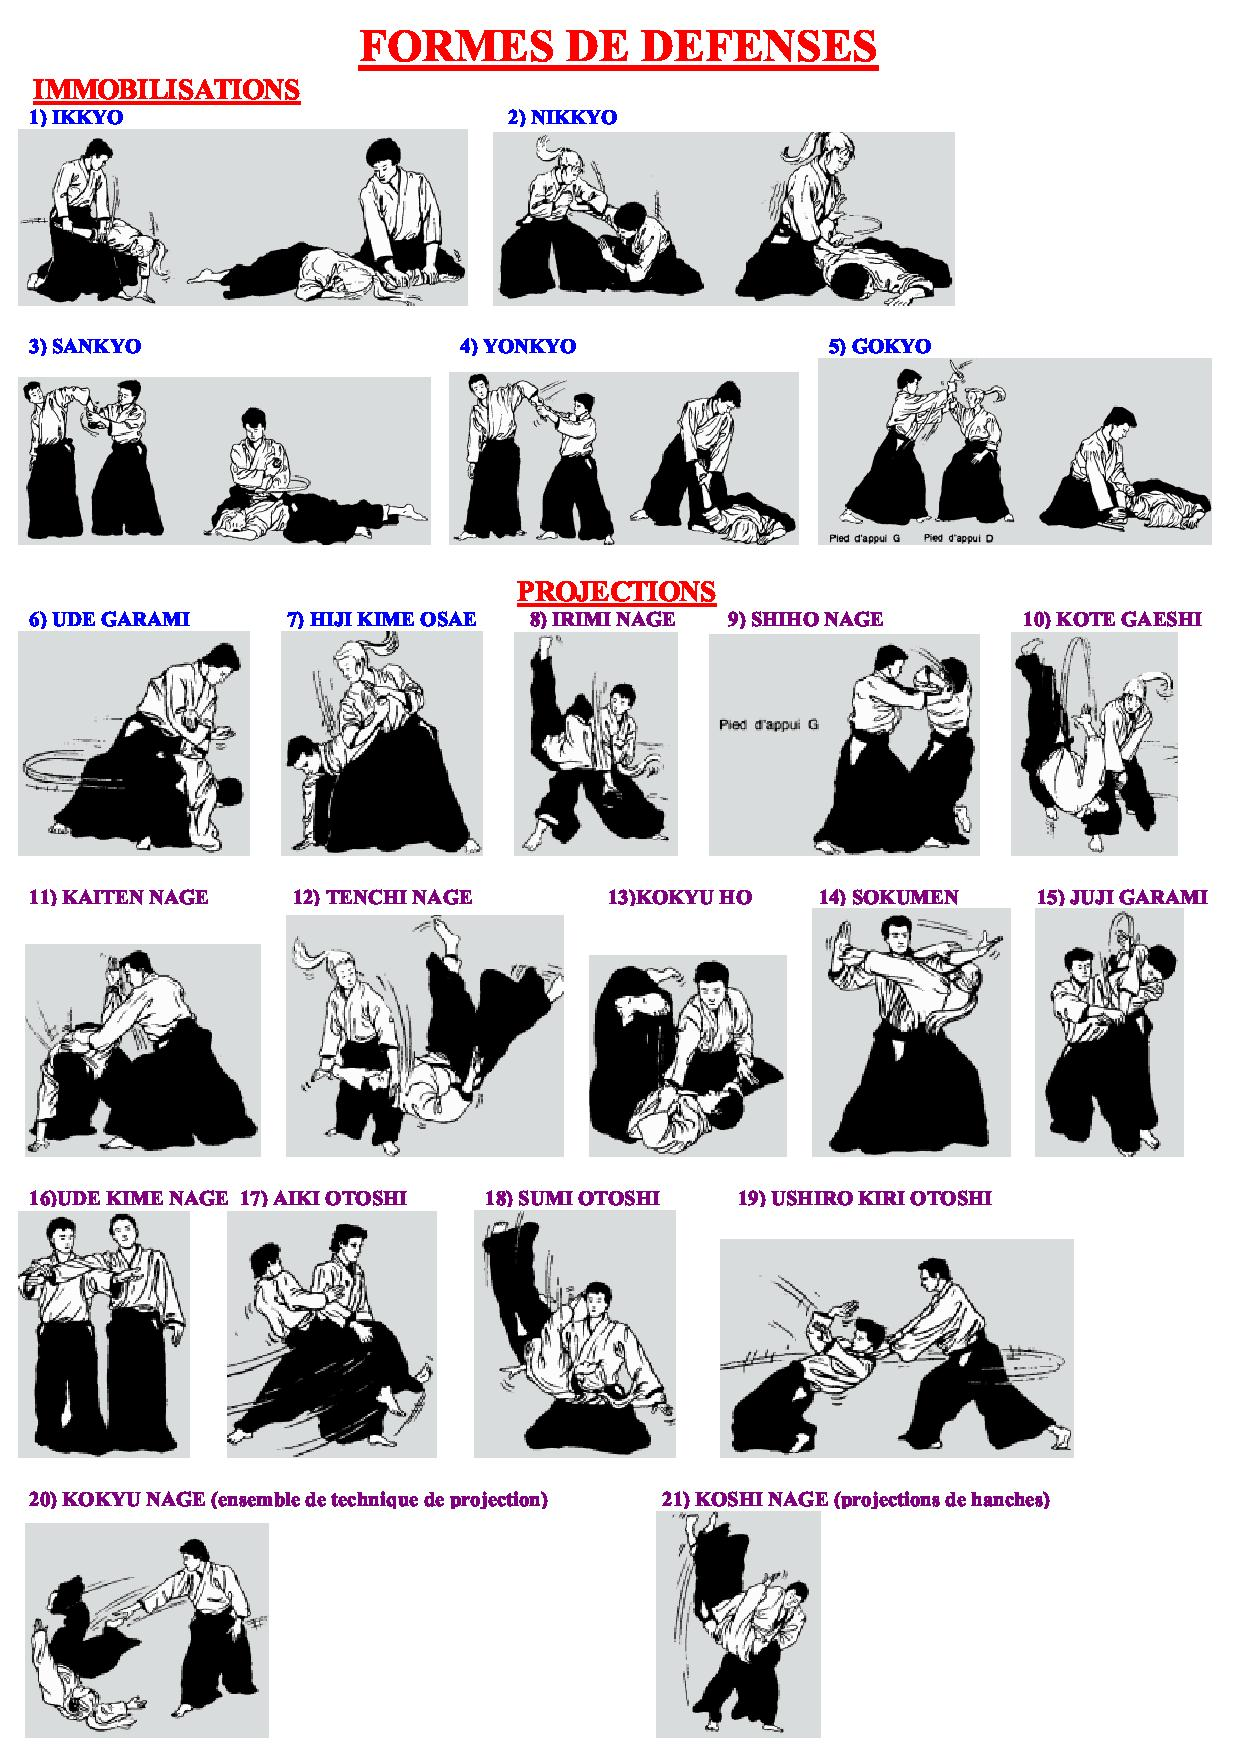 DEFENSES - AIKIDO (jpg)